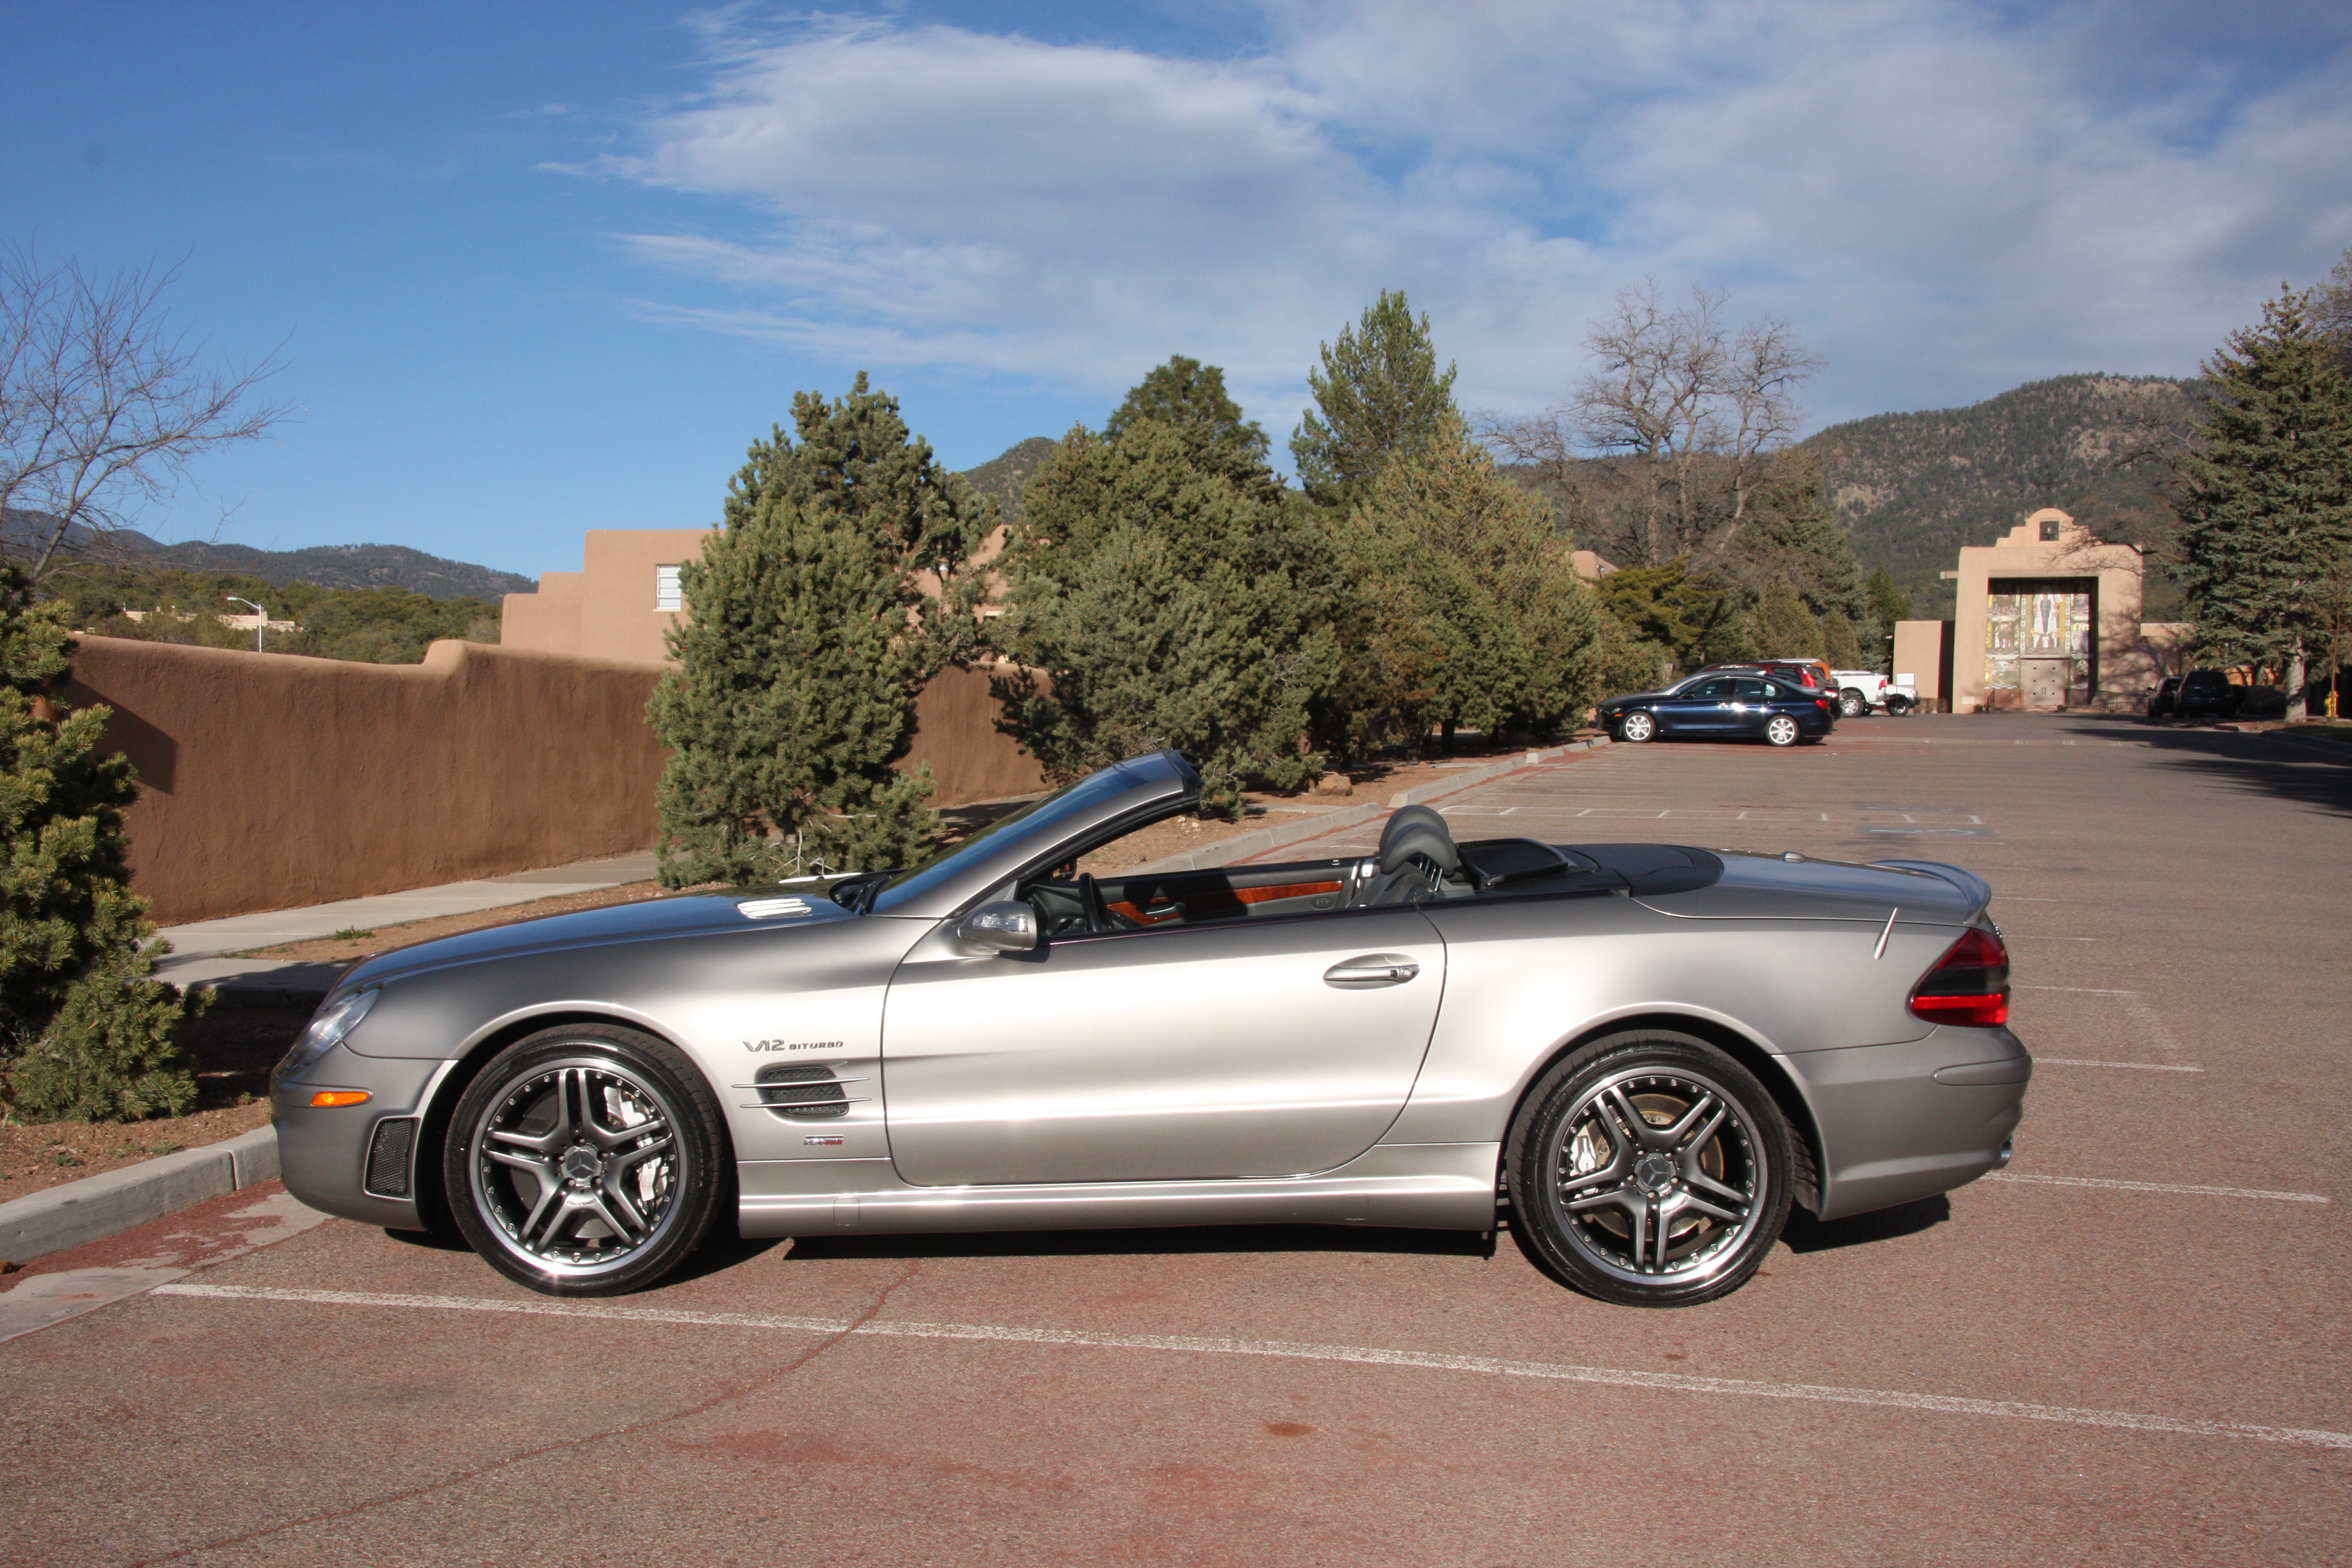 Jim Click Used Cars >> 2006 Mercedes SL65 AMG with Renntech tune « Jim Hailey's ...